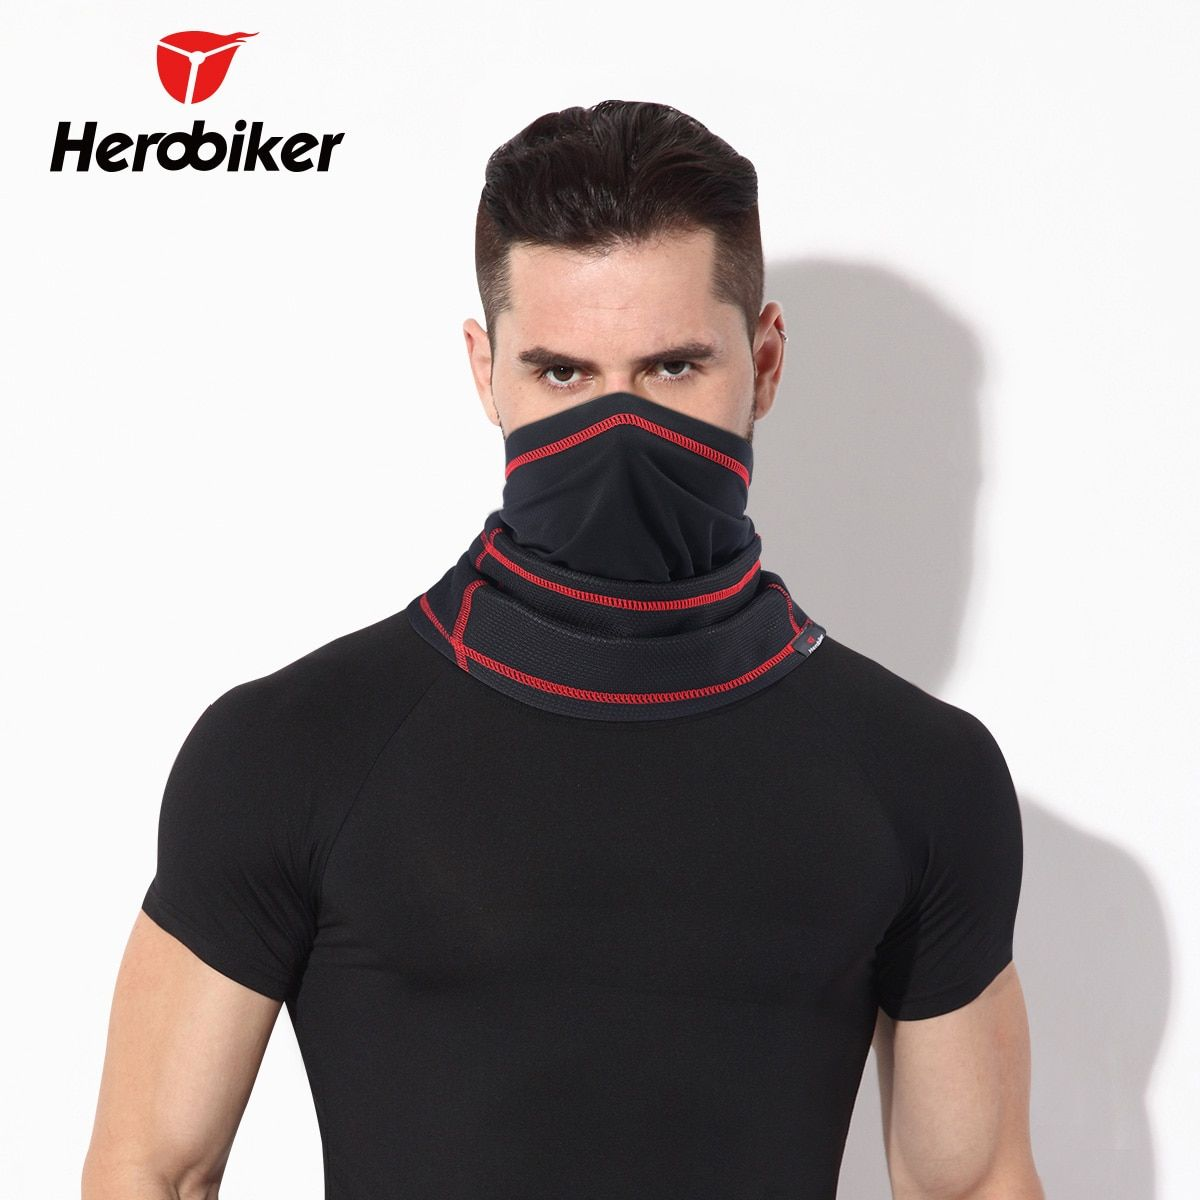 HEROBIKER Motorcycle Face Mask Windproof Keep Warm Motorcycle Ski Mask Winter Protect the Neck Half Face Mask Windproof collar